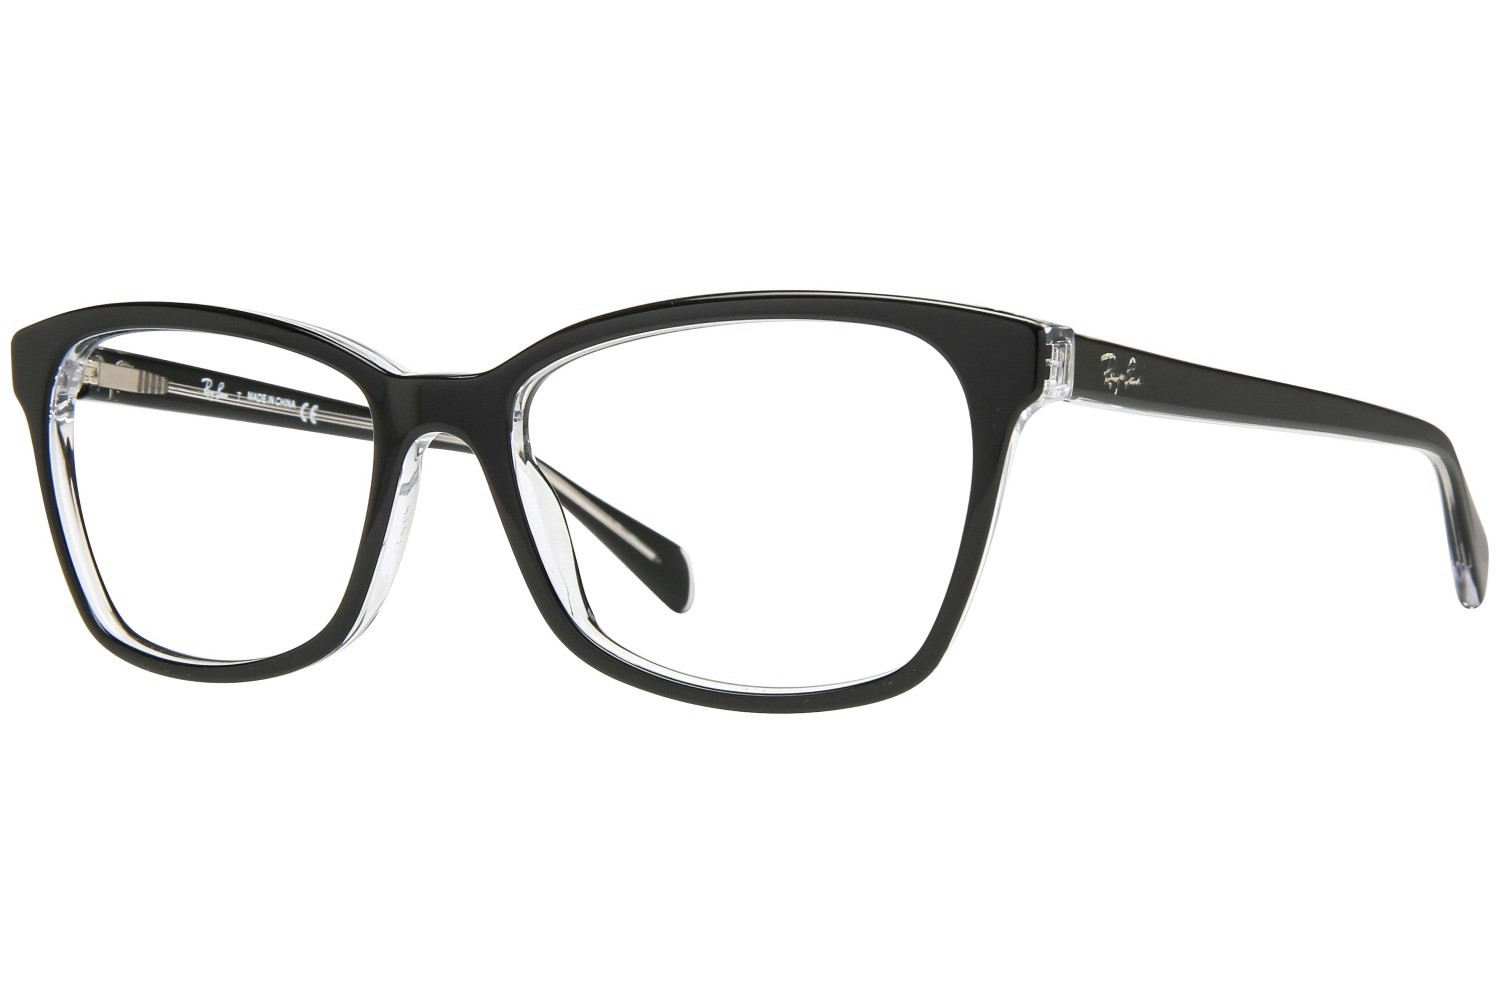 452d3adc99 ... coupon code for review ray ban rx5362 prescription eyeglasses review  contact lenses medium cf271 47285